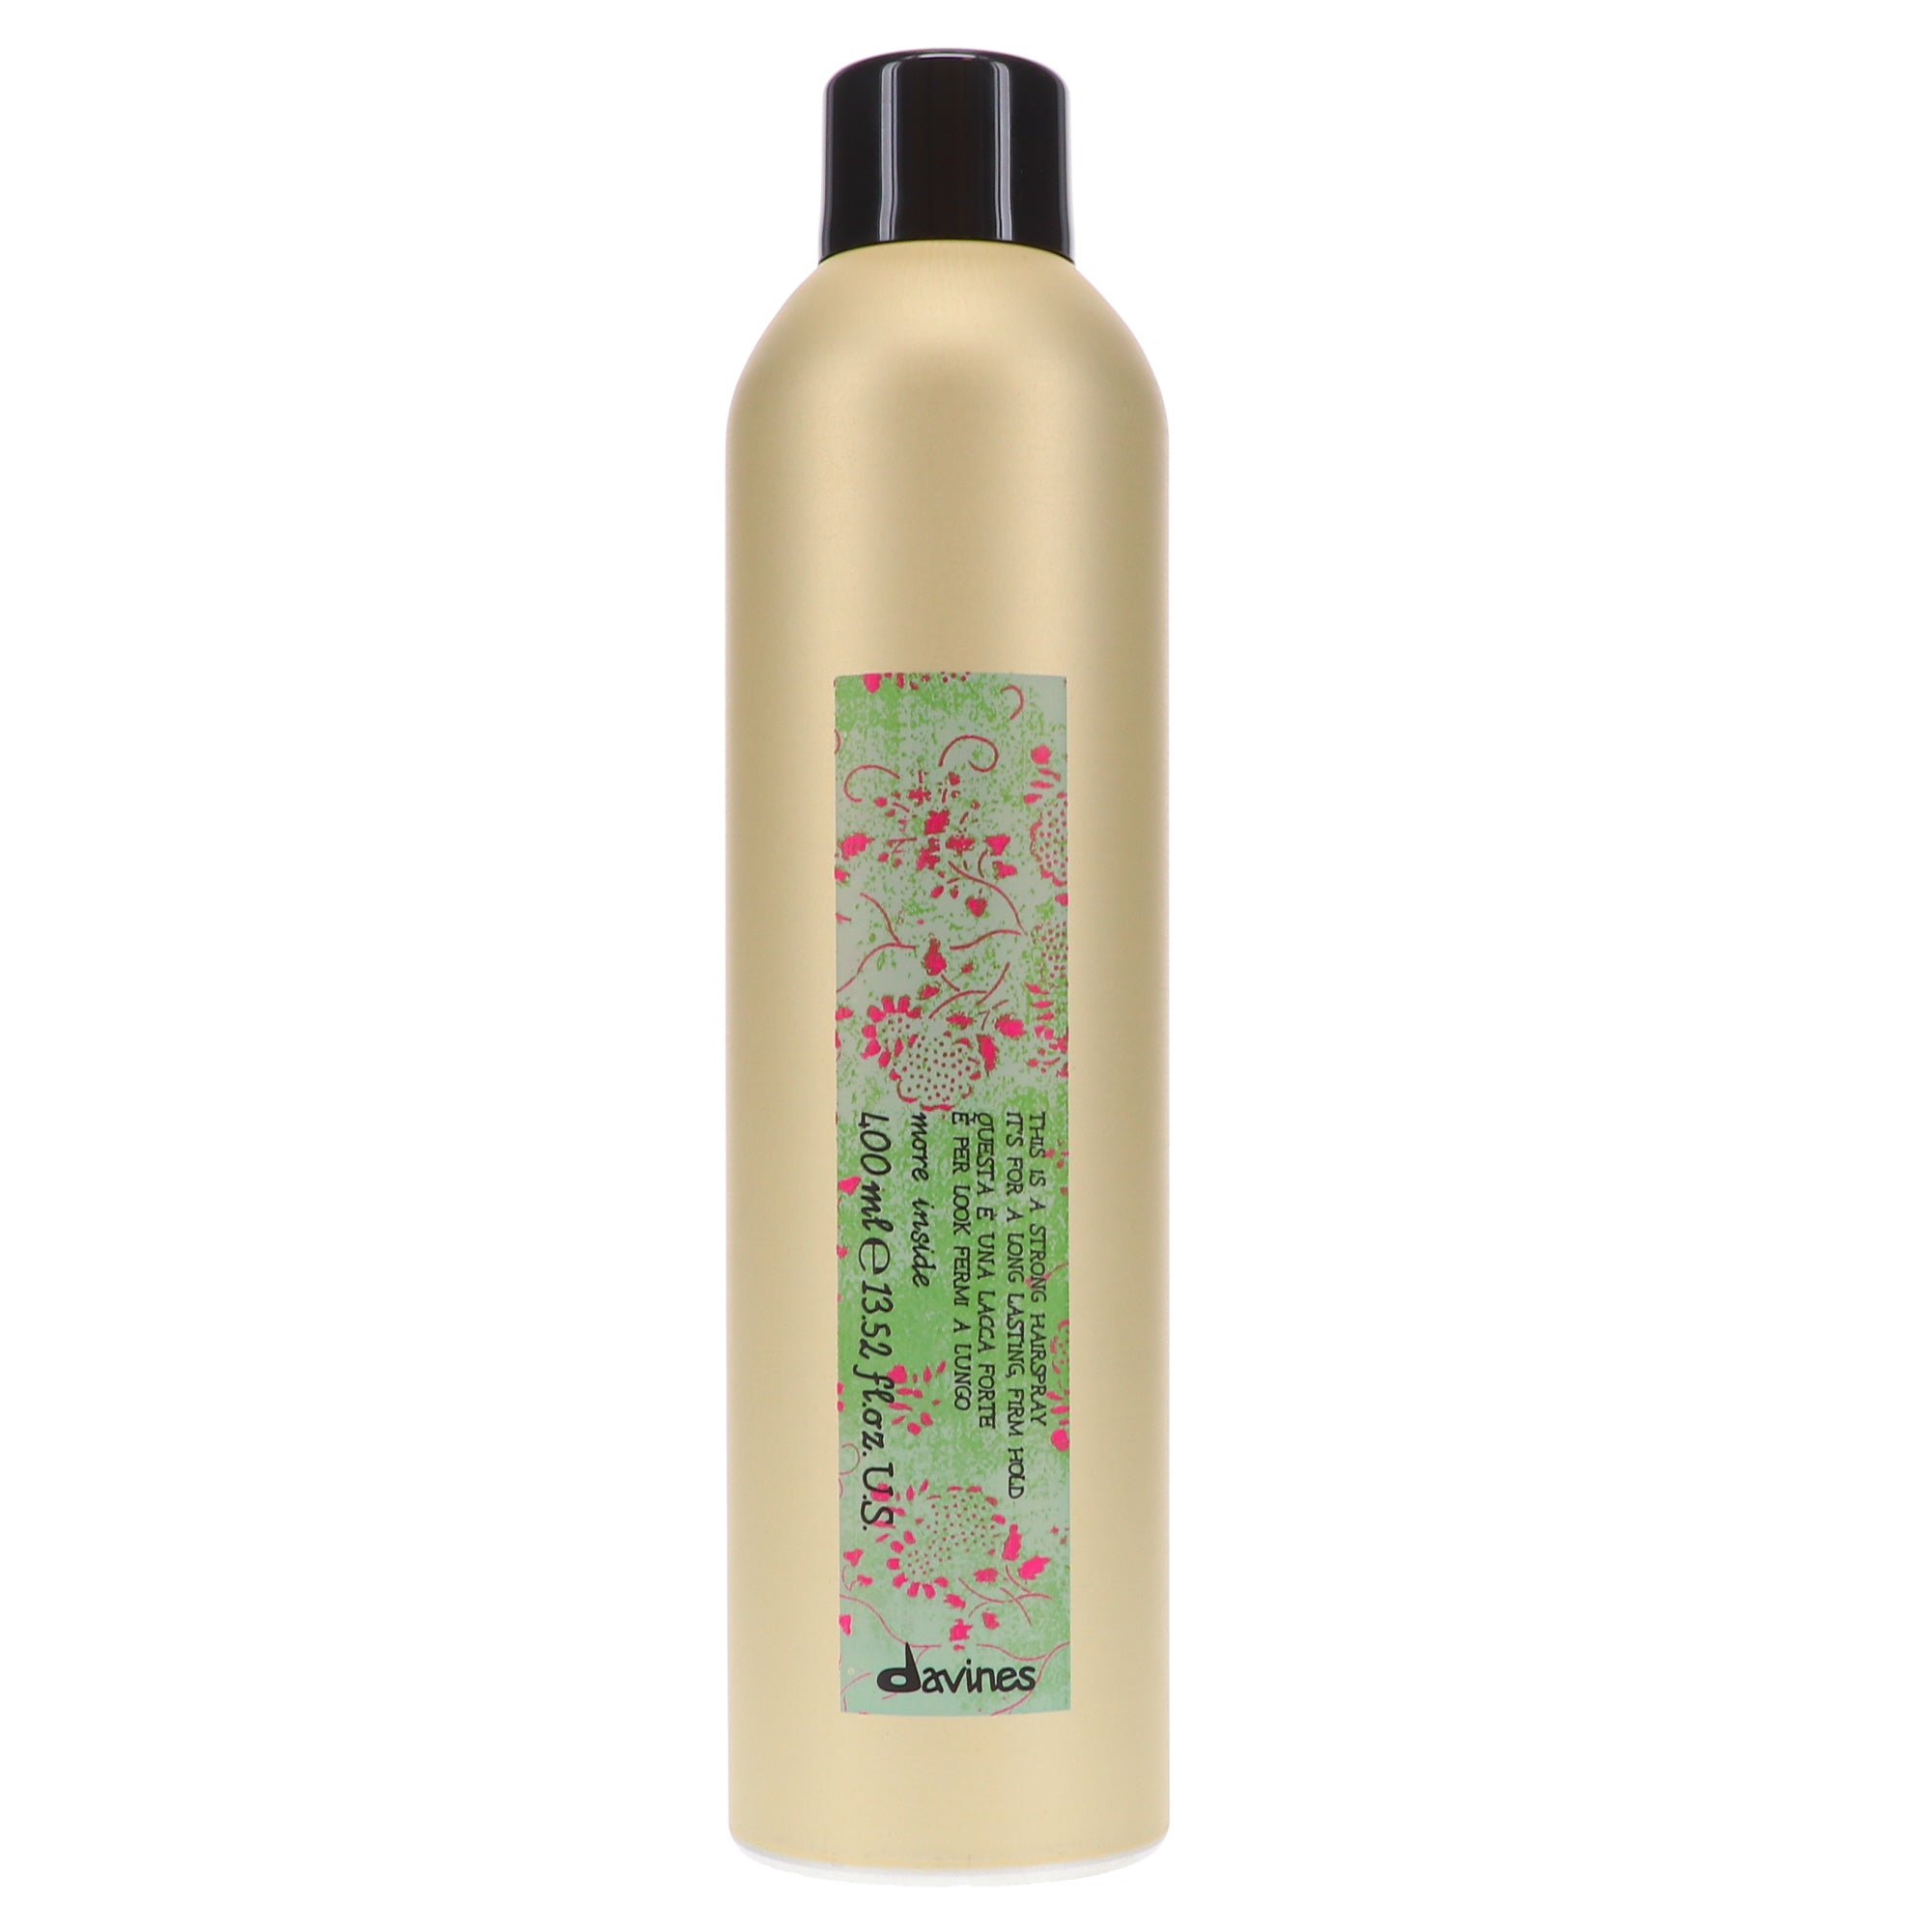 This is a Strong Hair Spray by Davines